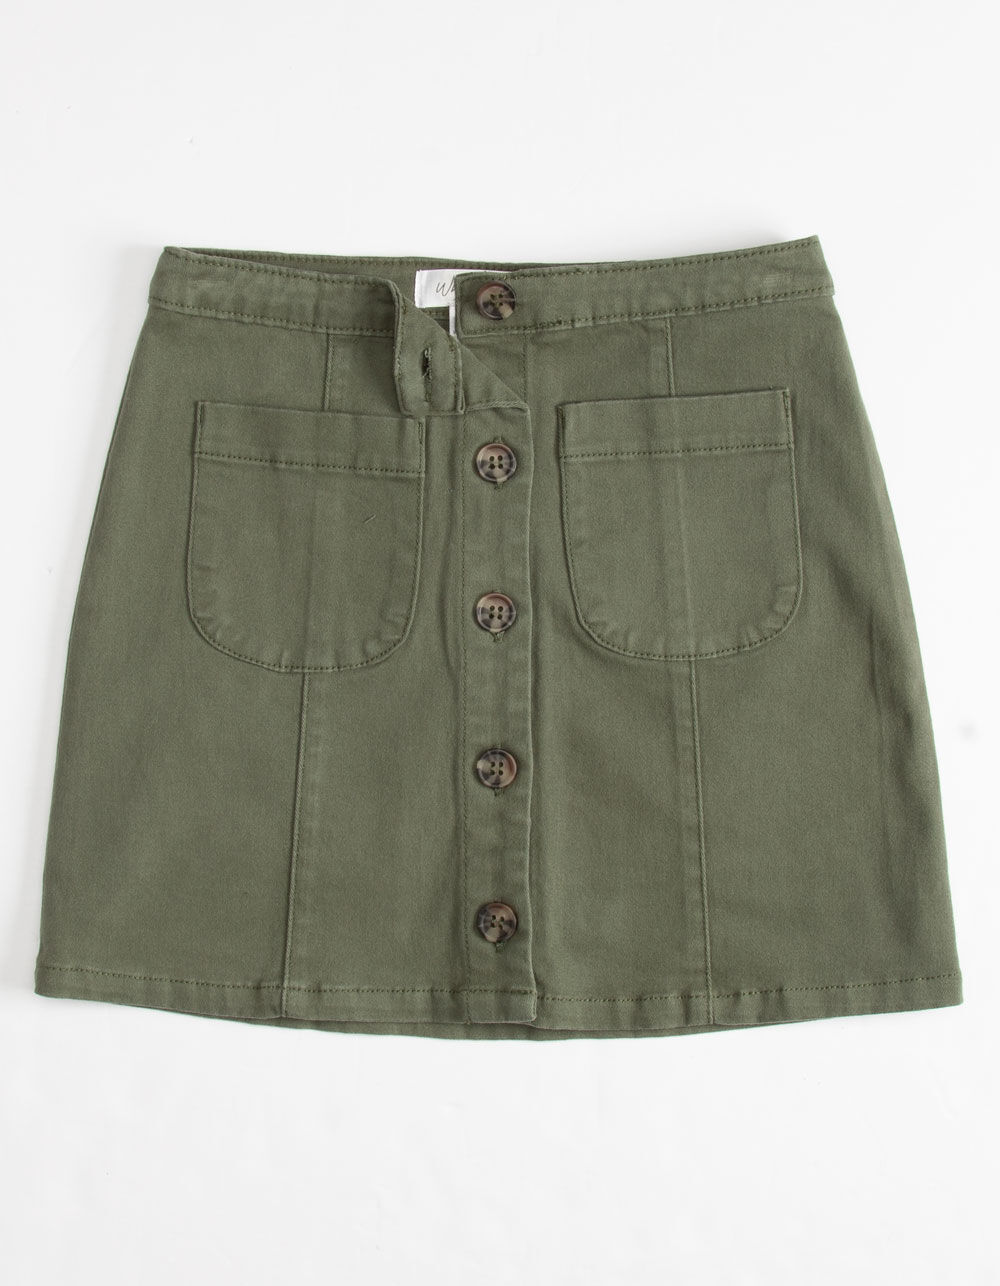 WHITE FAWN Twill Button Front Olive Girls Skirt